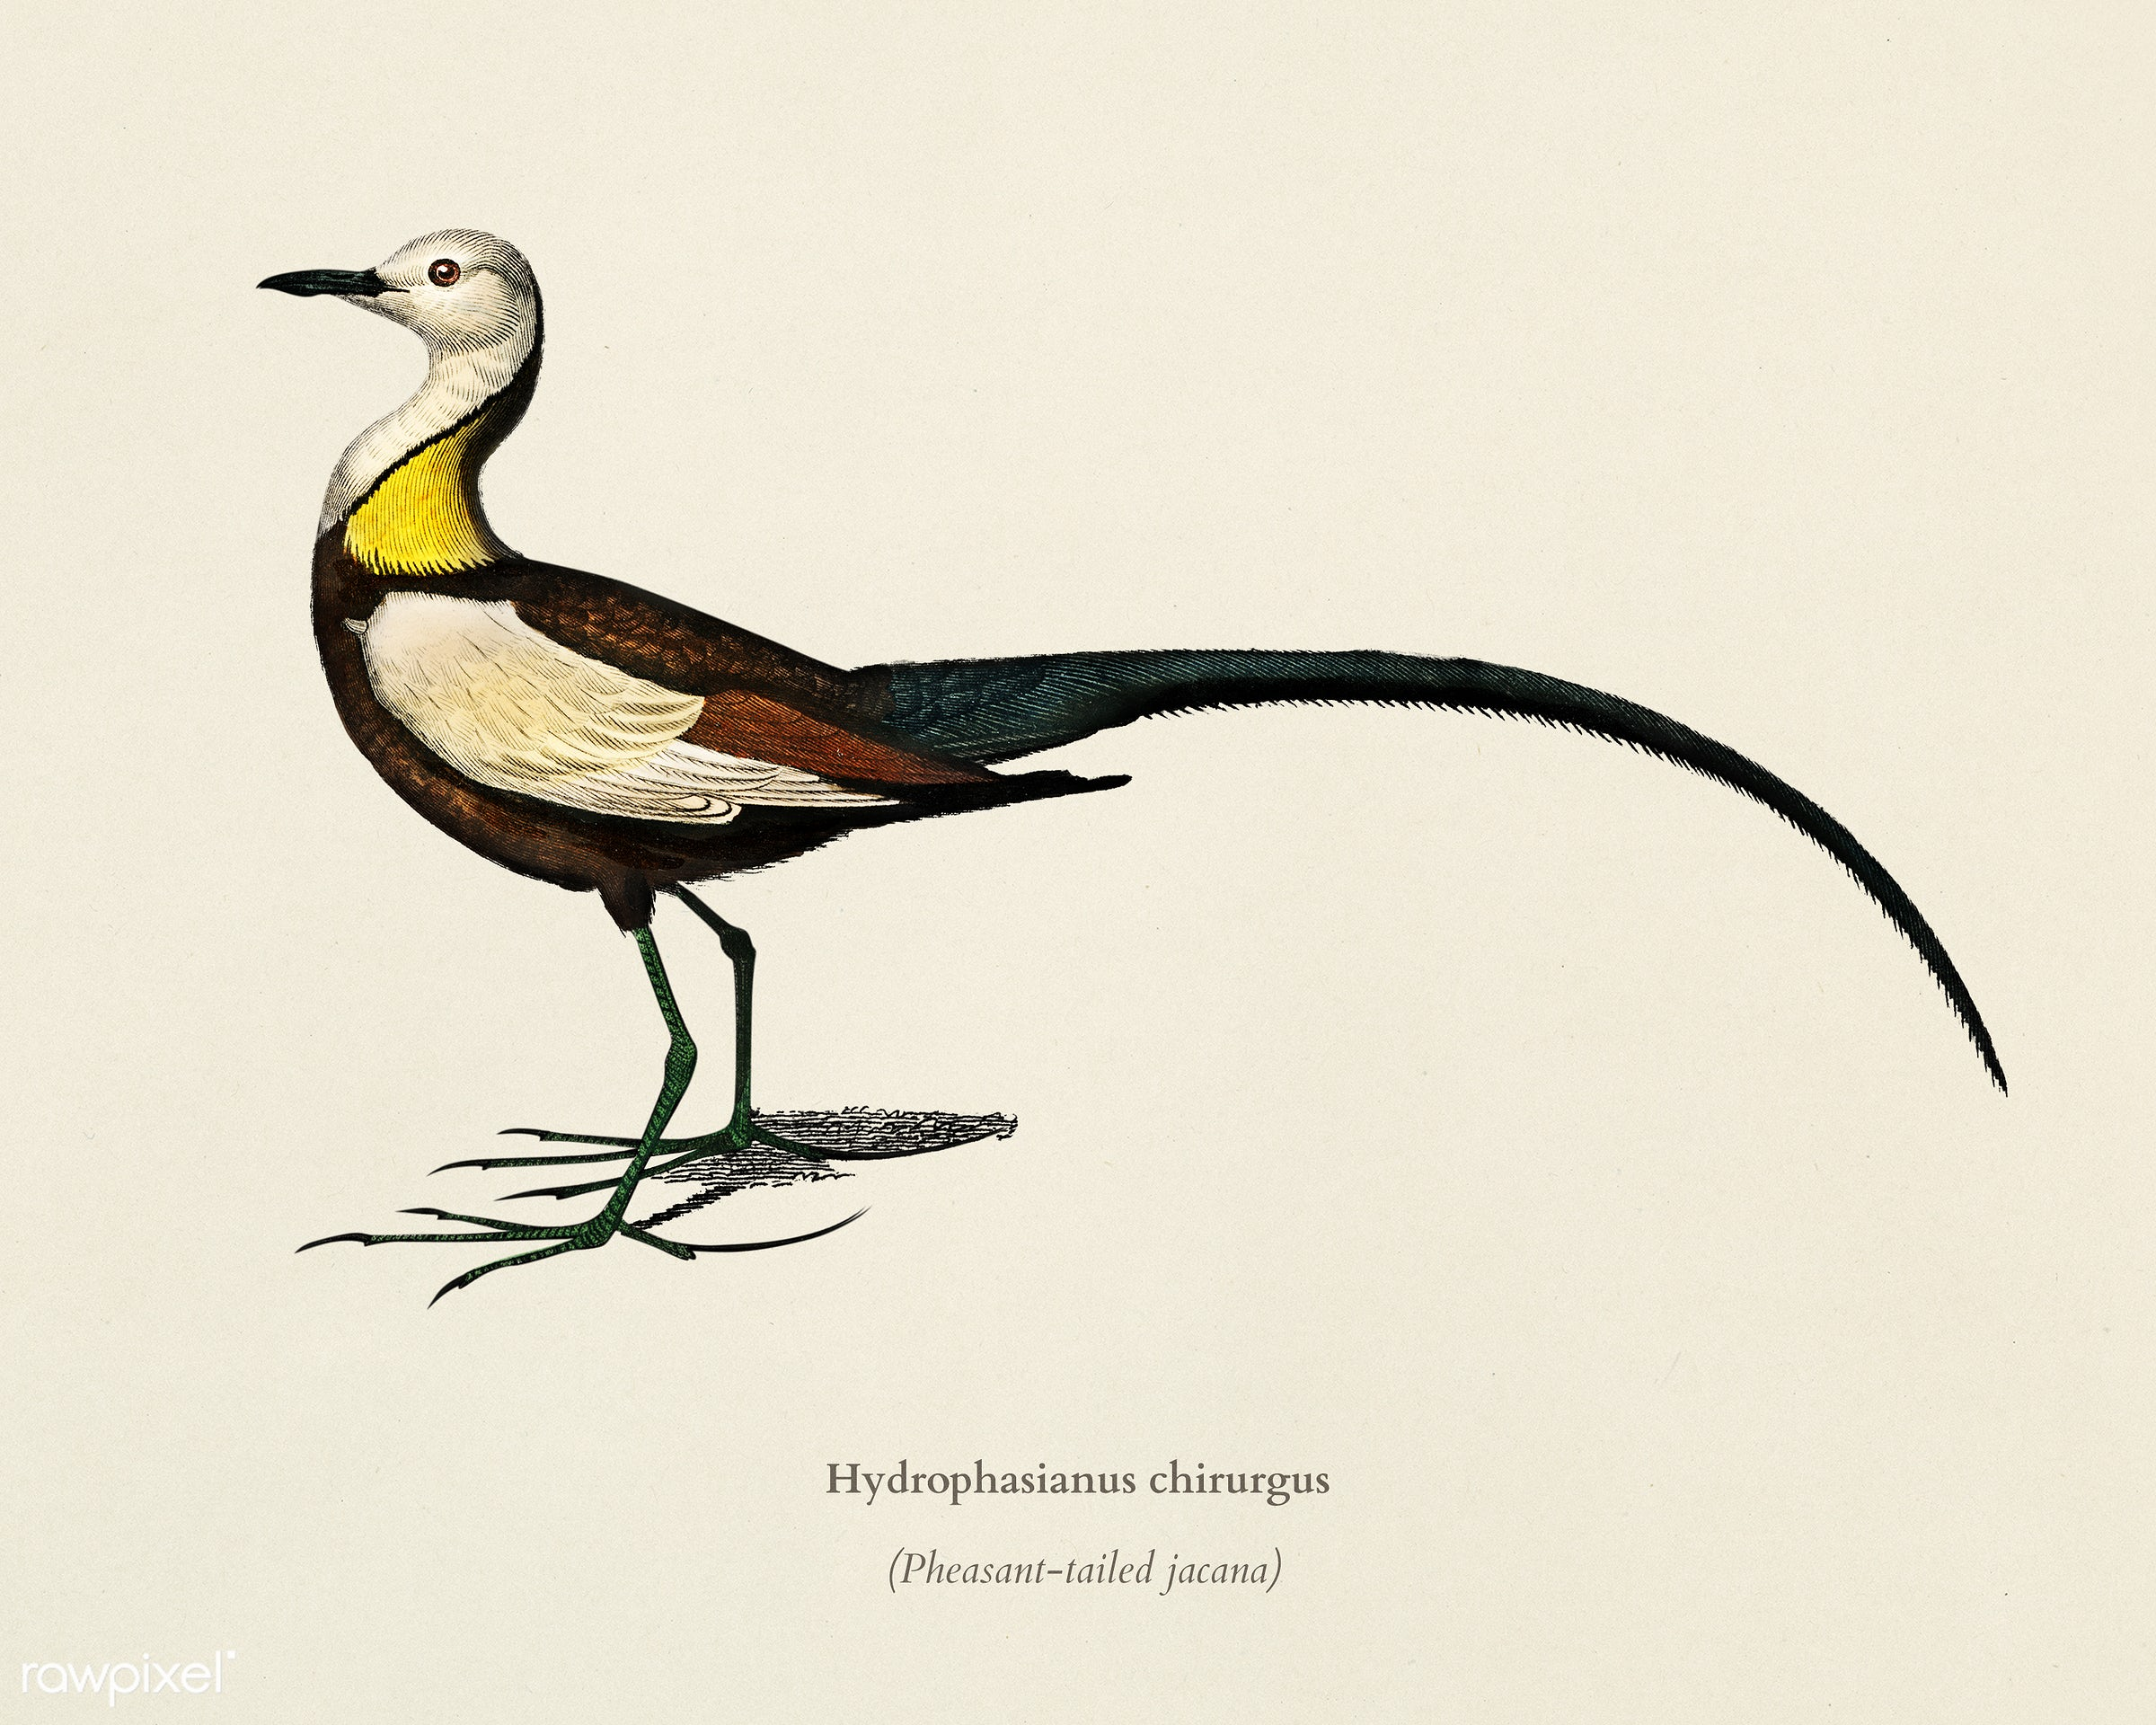 Pheasant-tailed jacana (Hydrophasianus chirurgus) illustrated by Charles Dessalines D' Orbigny (1806-1876). Digitally...